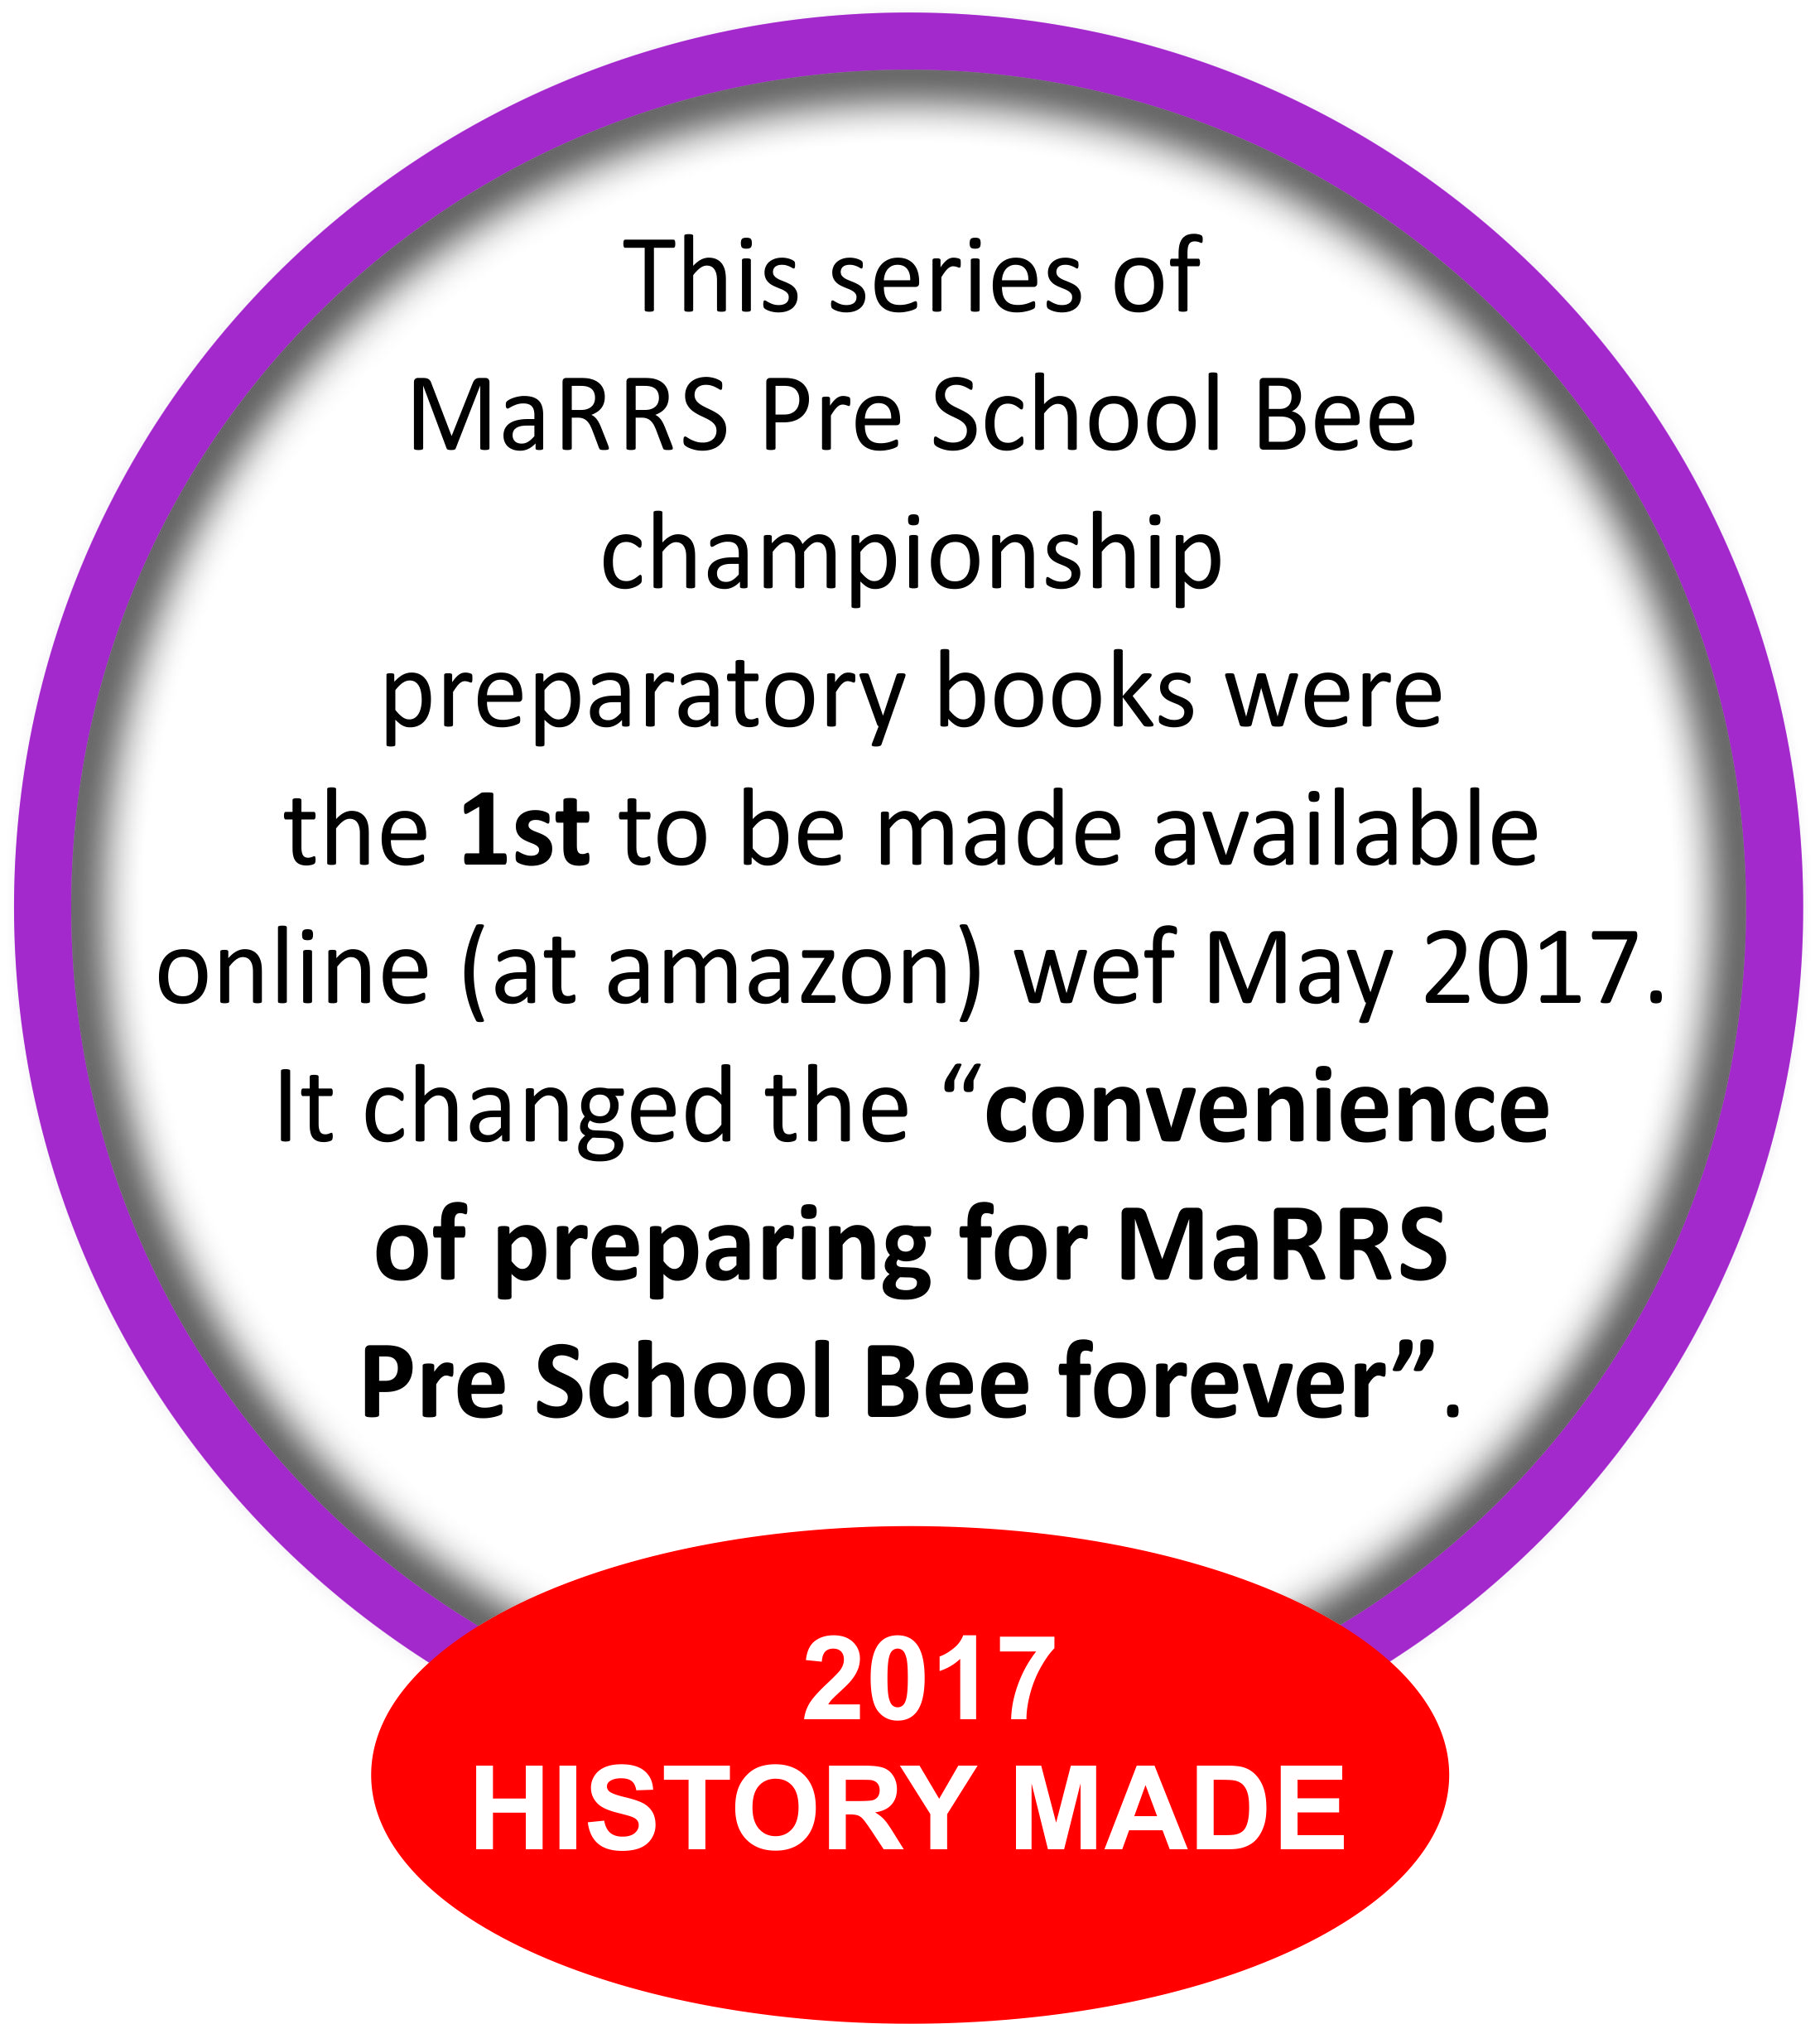 marrs preschool pre school bee